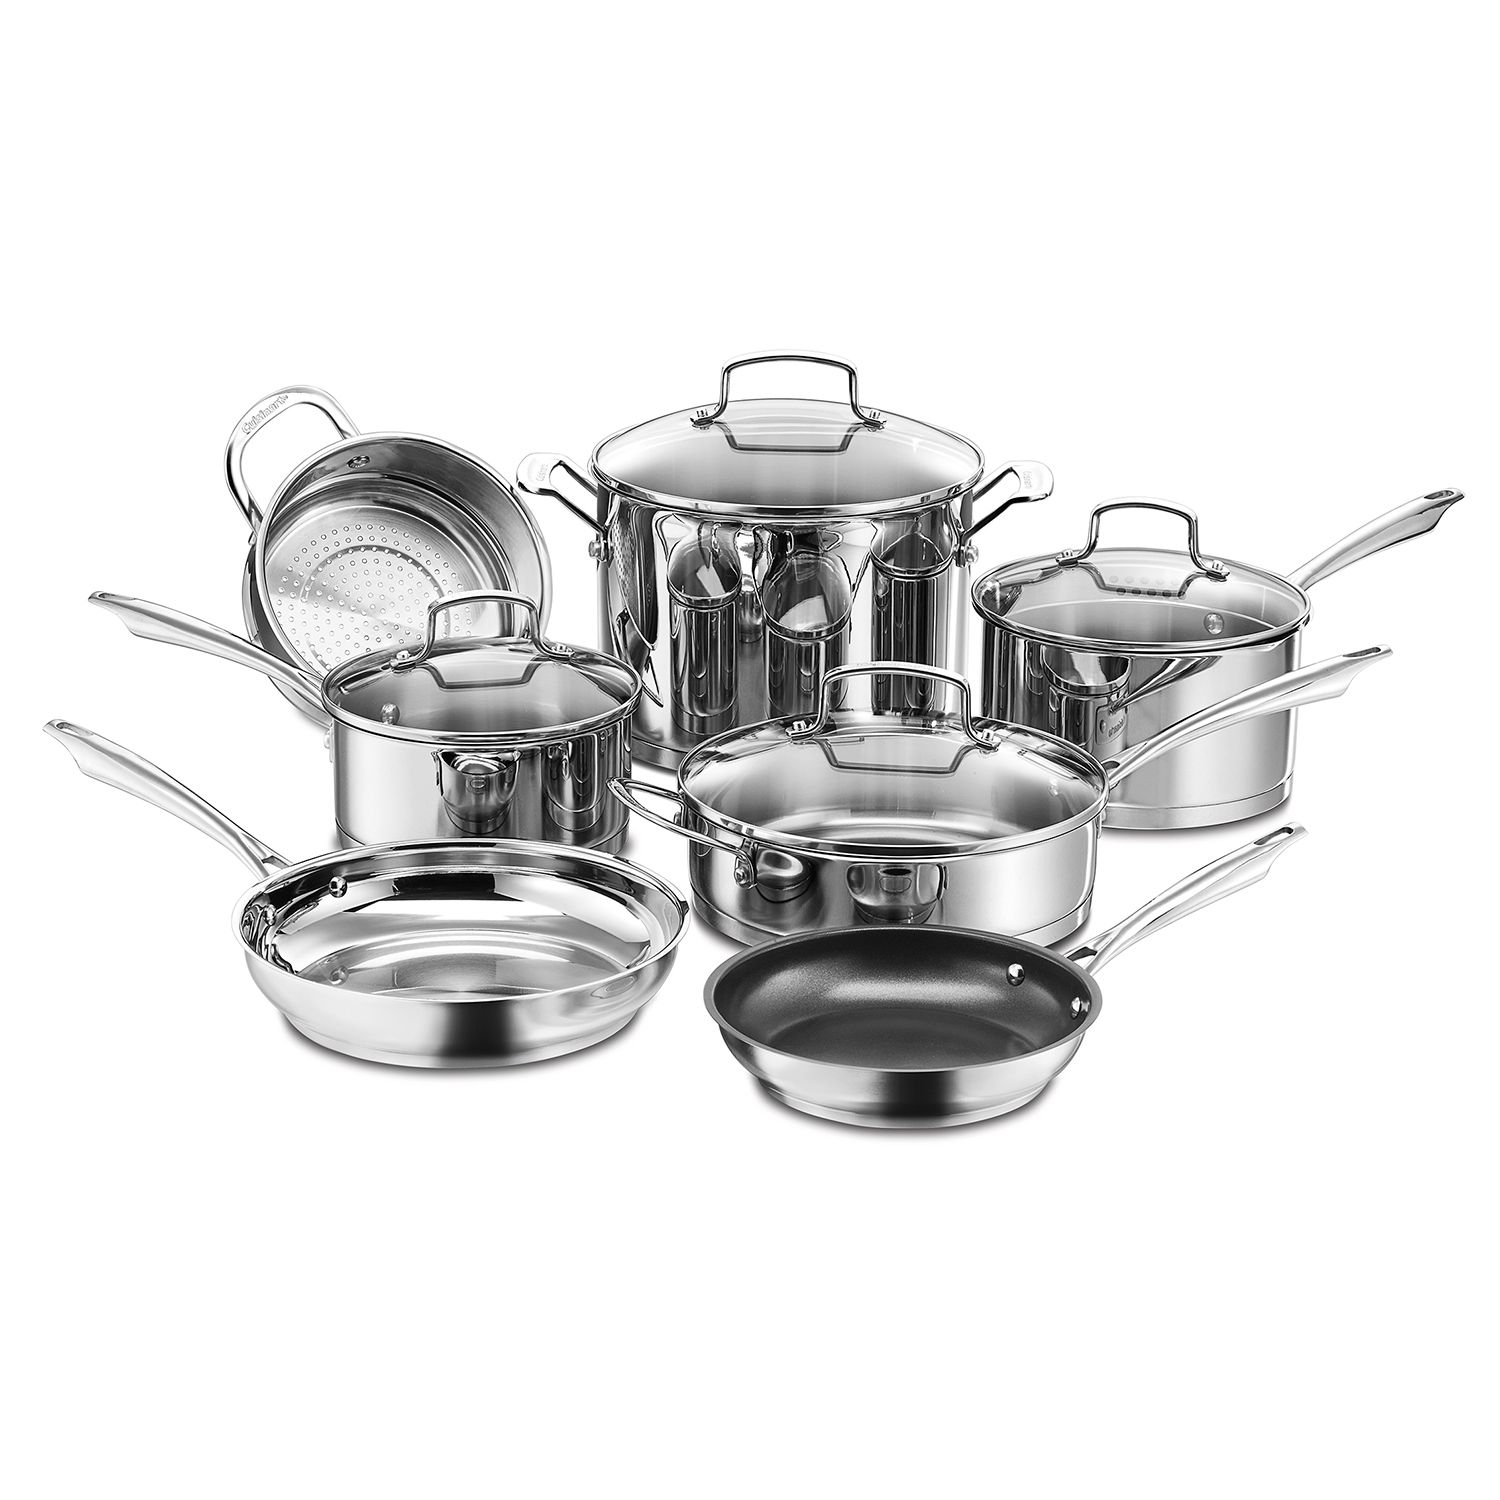 Professional Stainless Steel Cookware Set